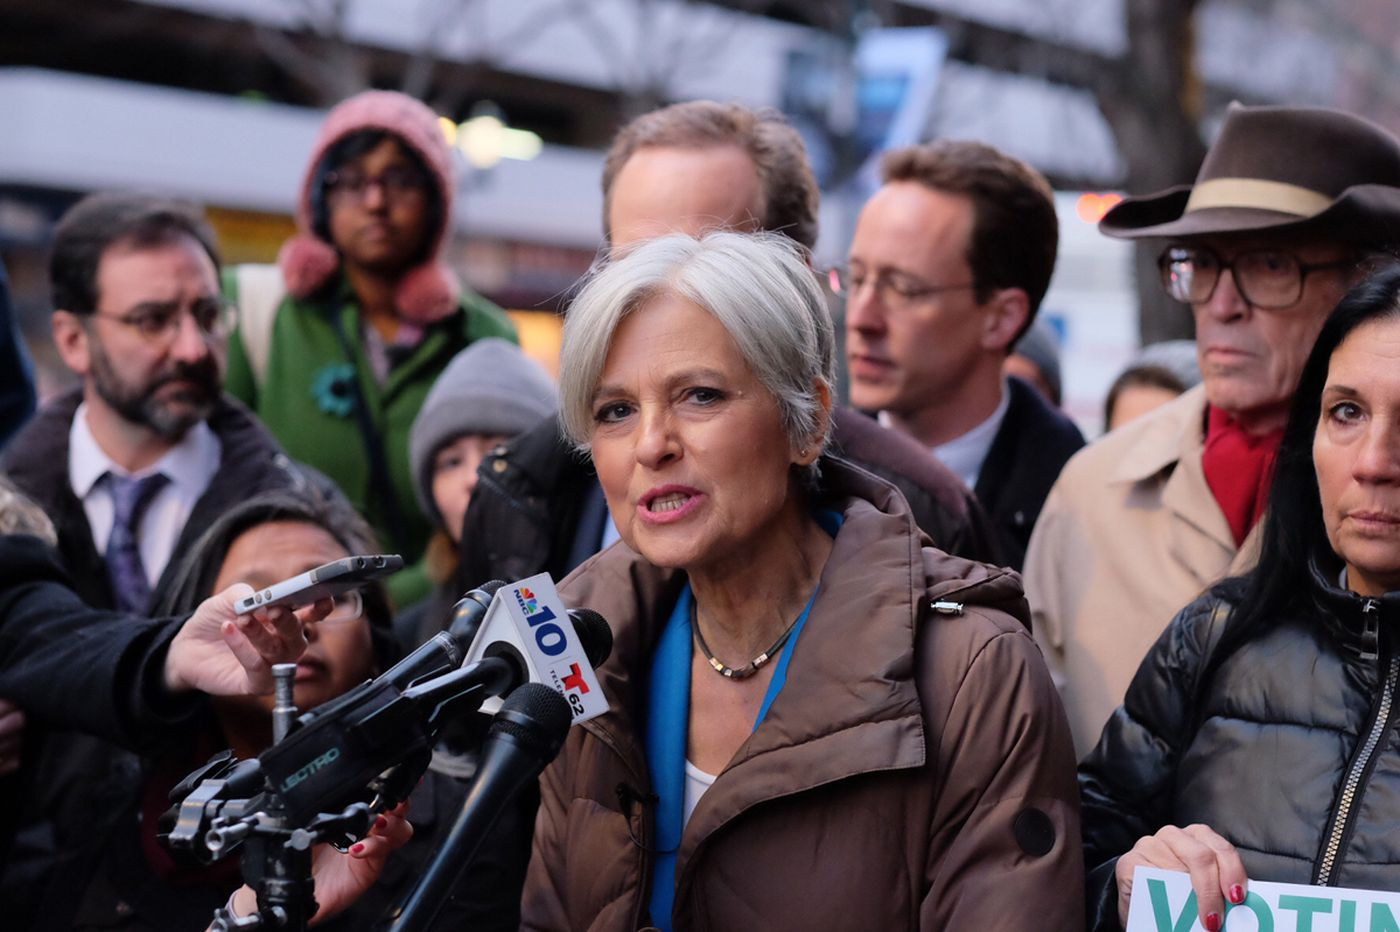 Federal judge to Jill Stein on recount request: Too little, too late